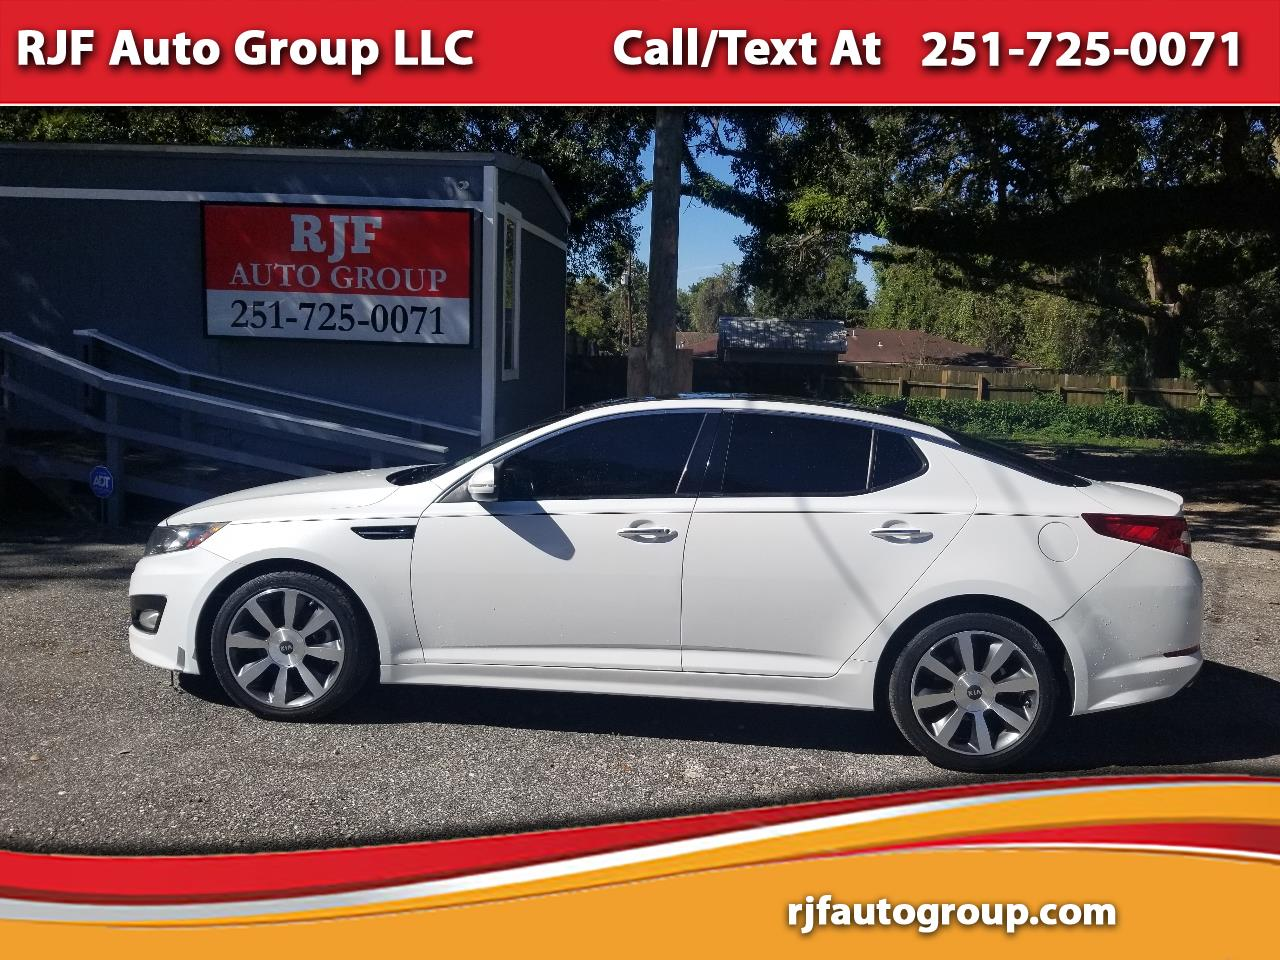 2012 Kia Optima 4dr Sdn SX w/Chrome Limited Pkg